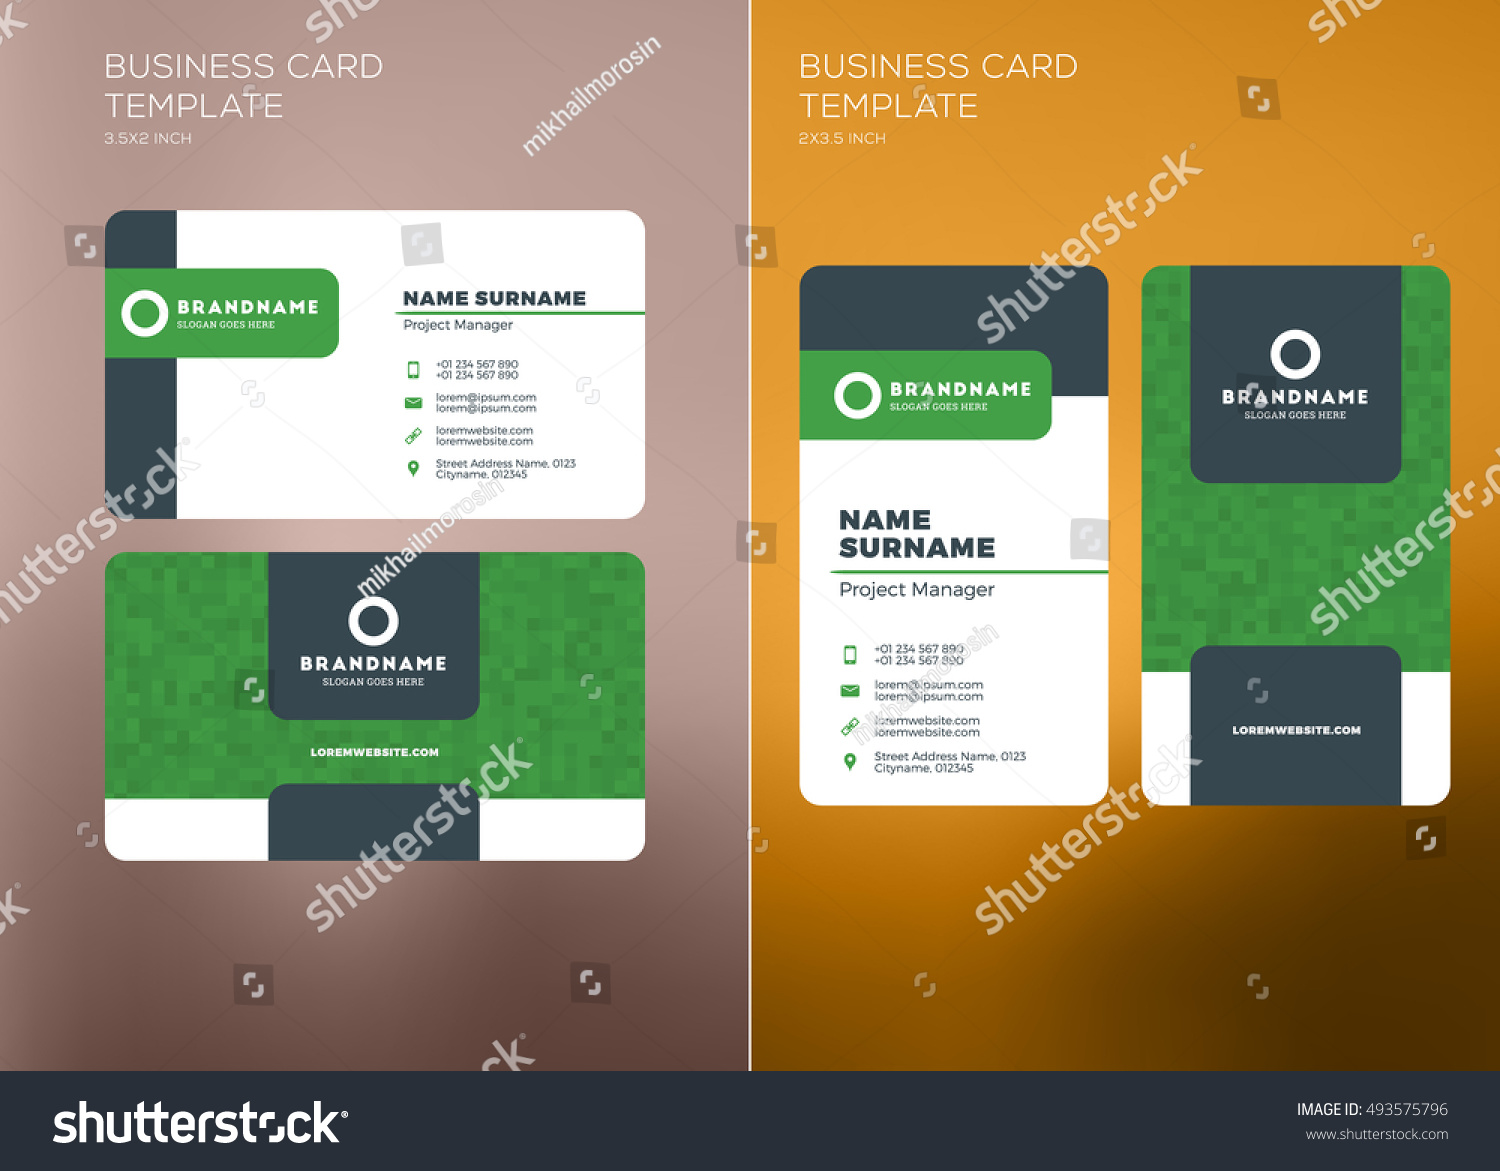 Corporate business card print template personal stock vector 2018 corporate business card print template personal visiting card with company logo vertical and horizontal cheaphphosting Choice Image